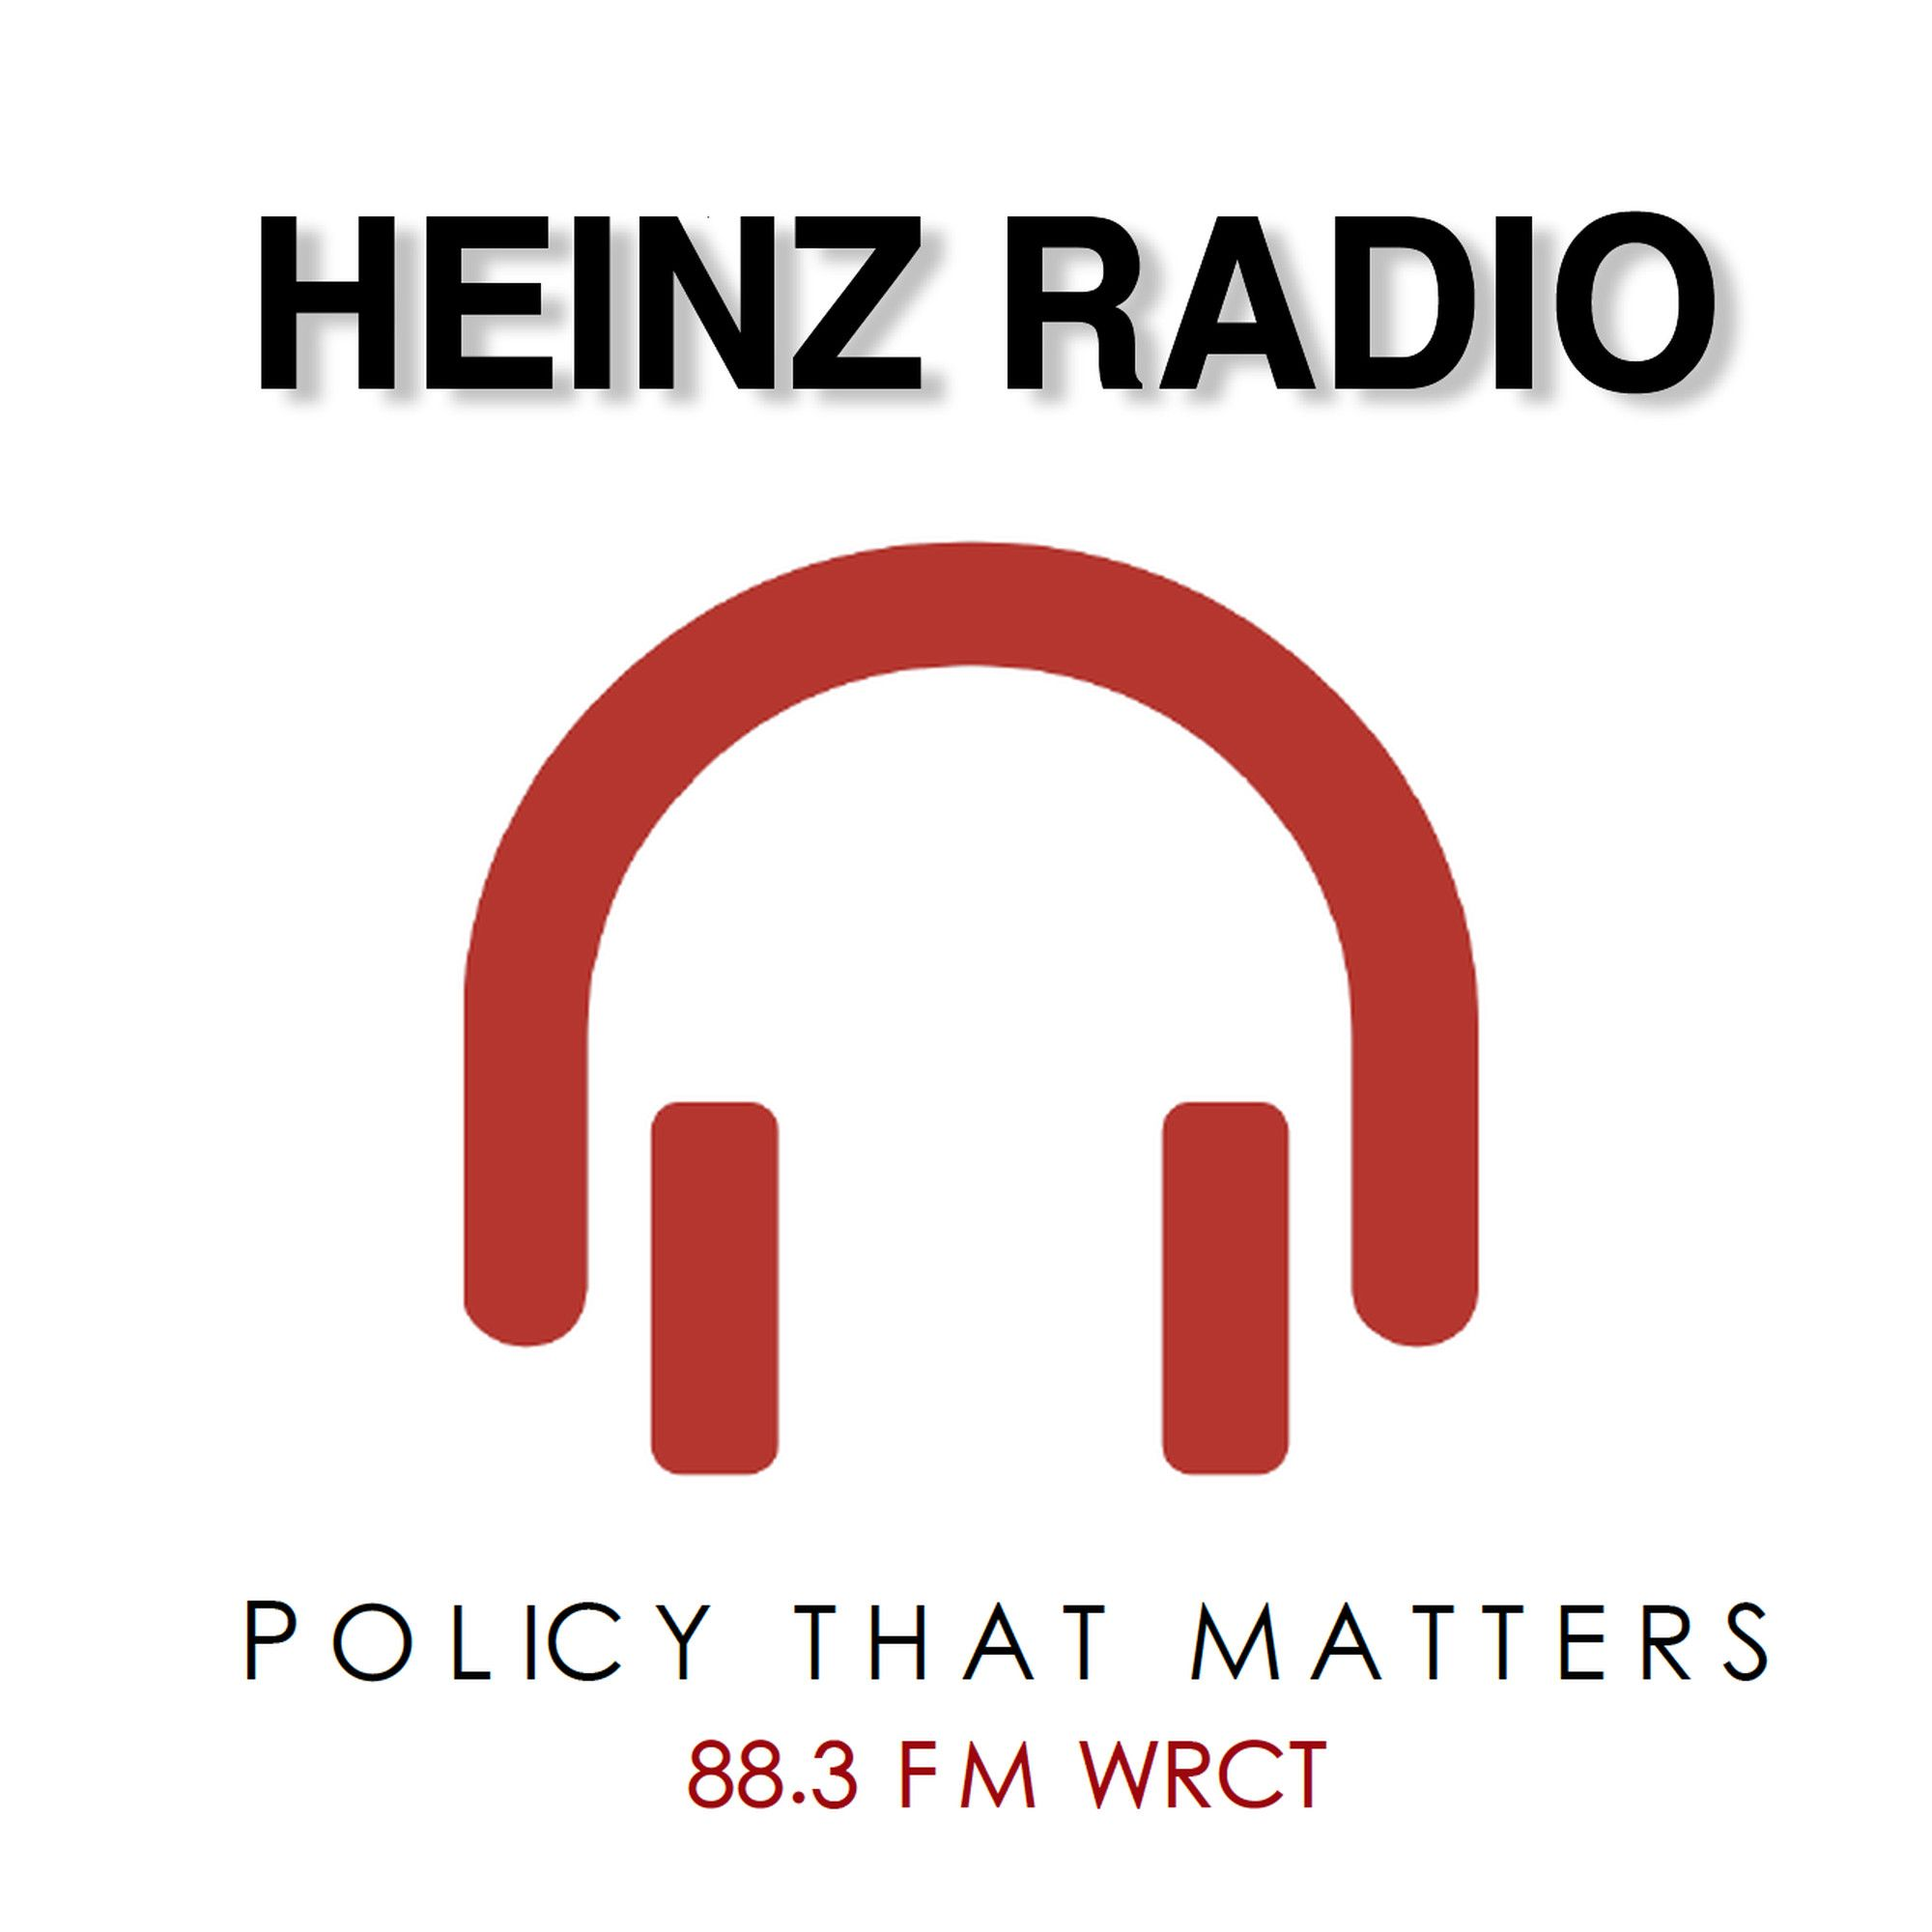 Heinz Radio: Policy That Matters